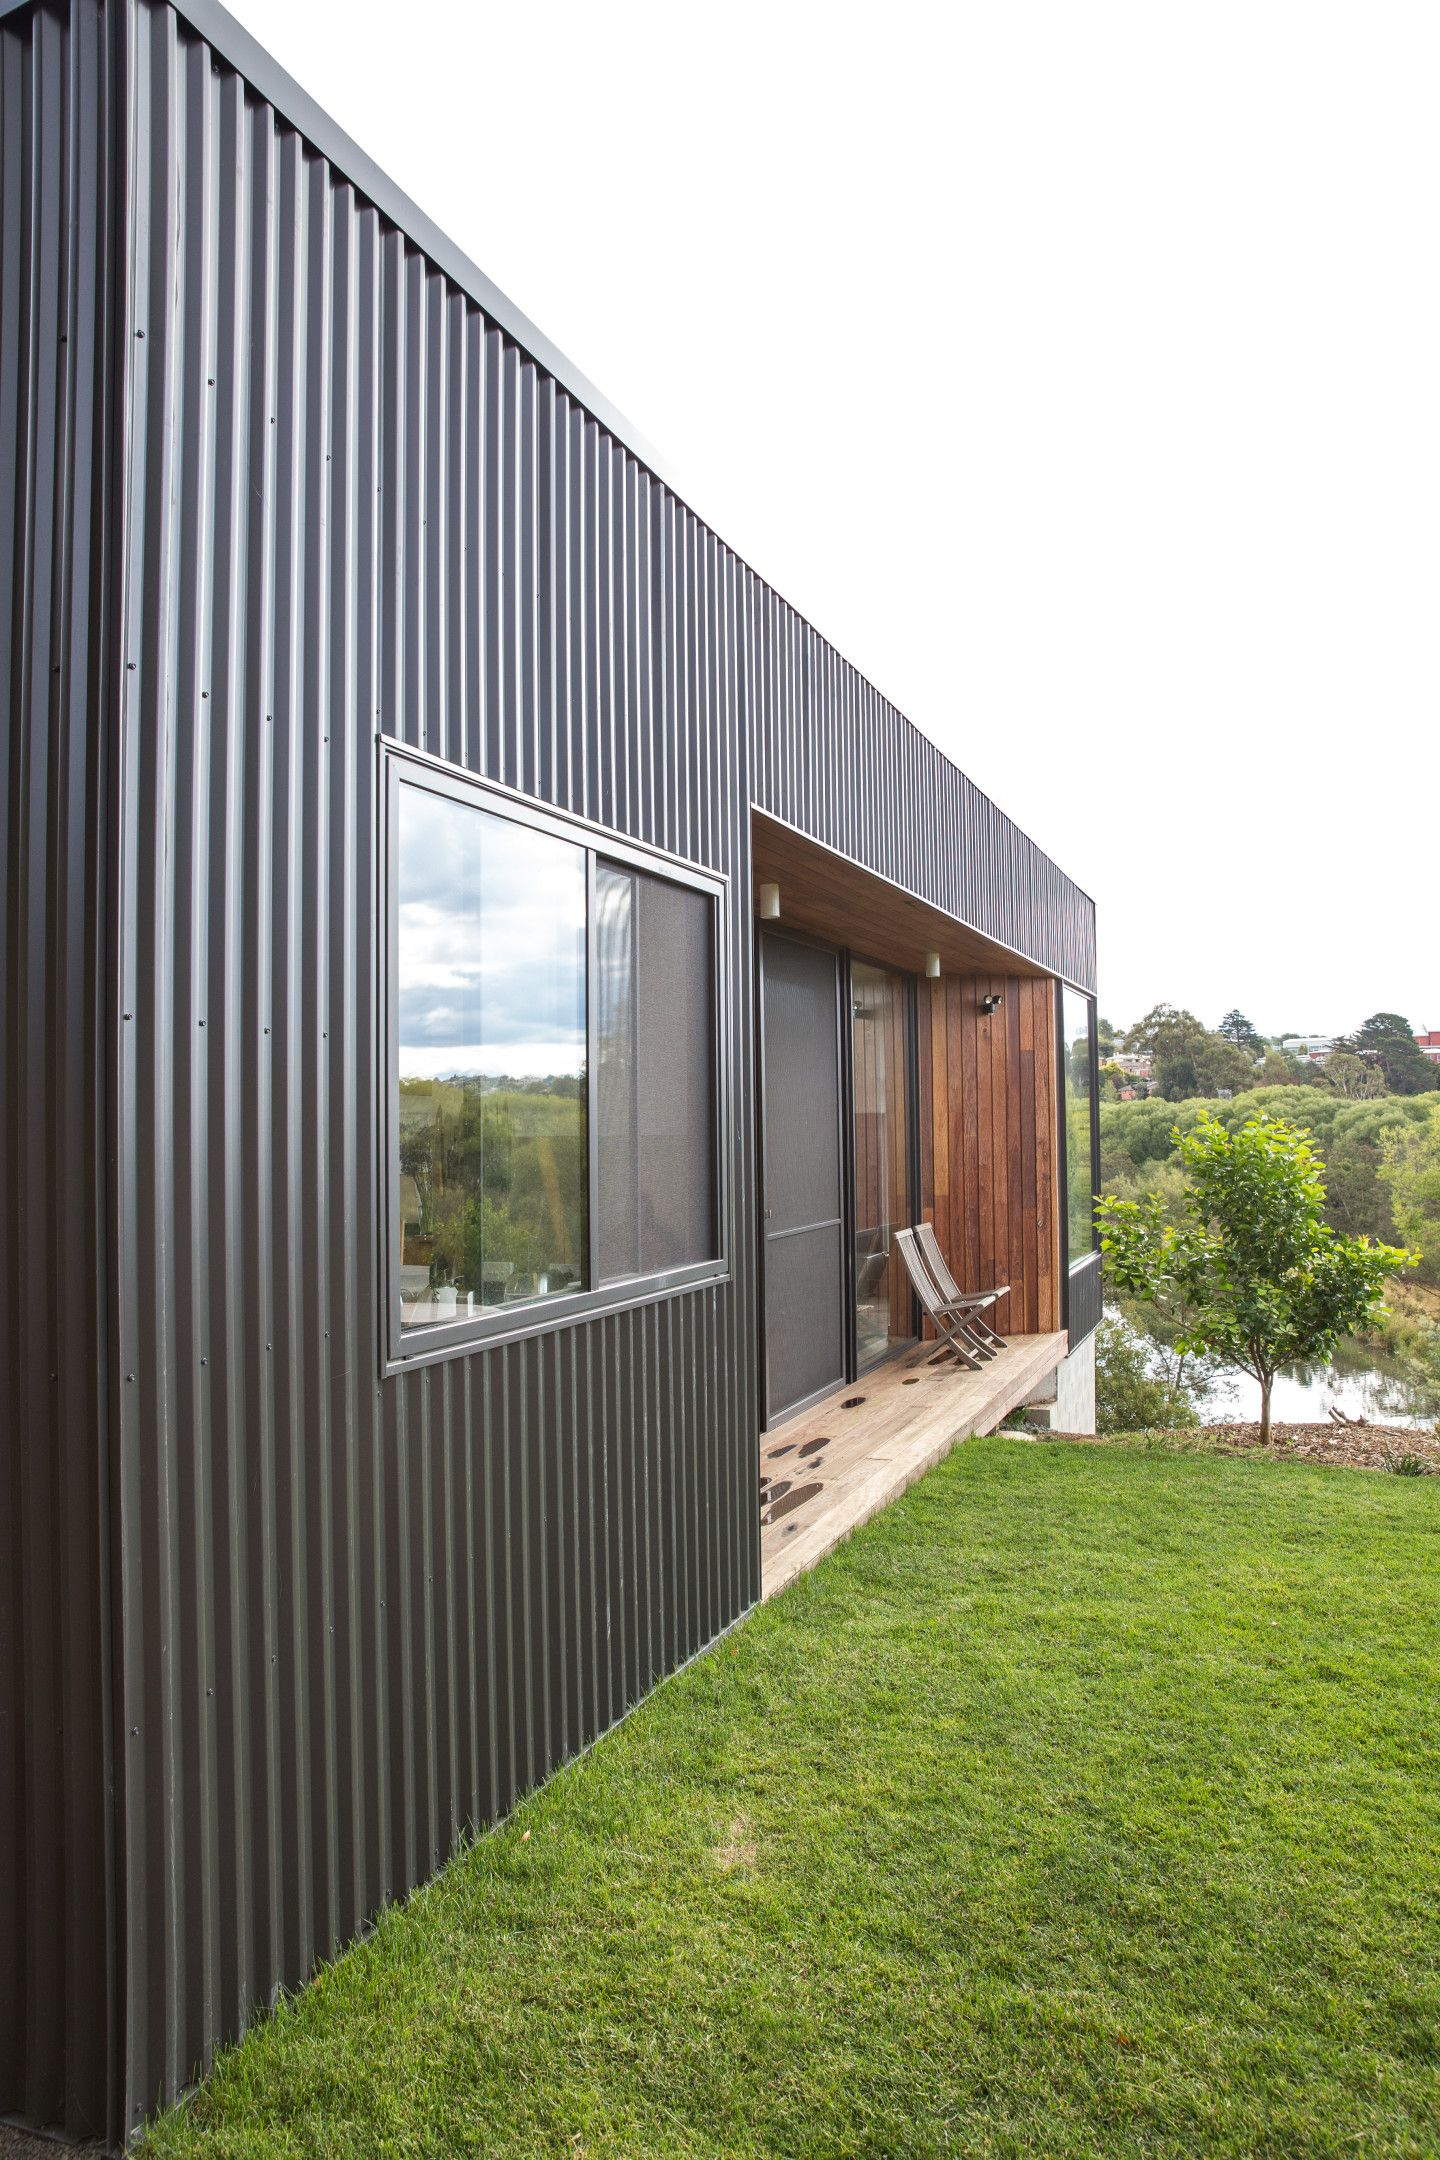 best metal sliding house ideas architecture pinterest home and buildings also rh